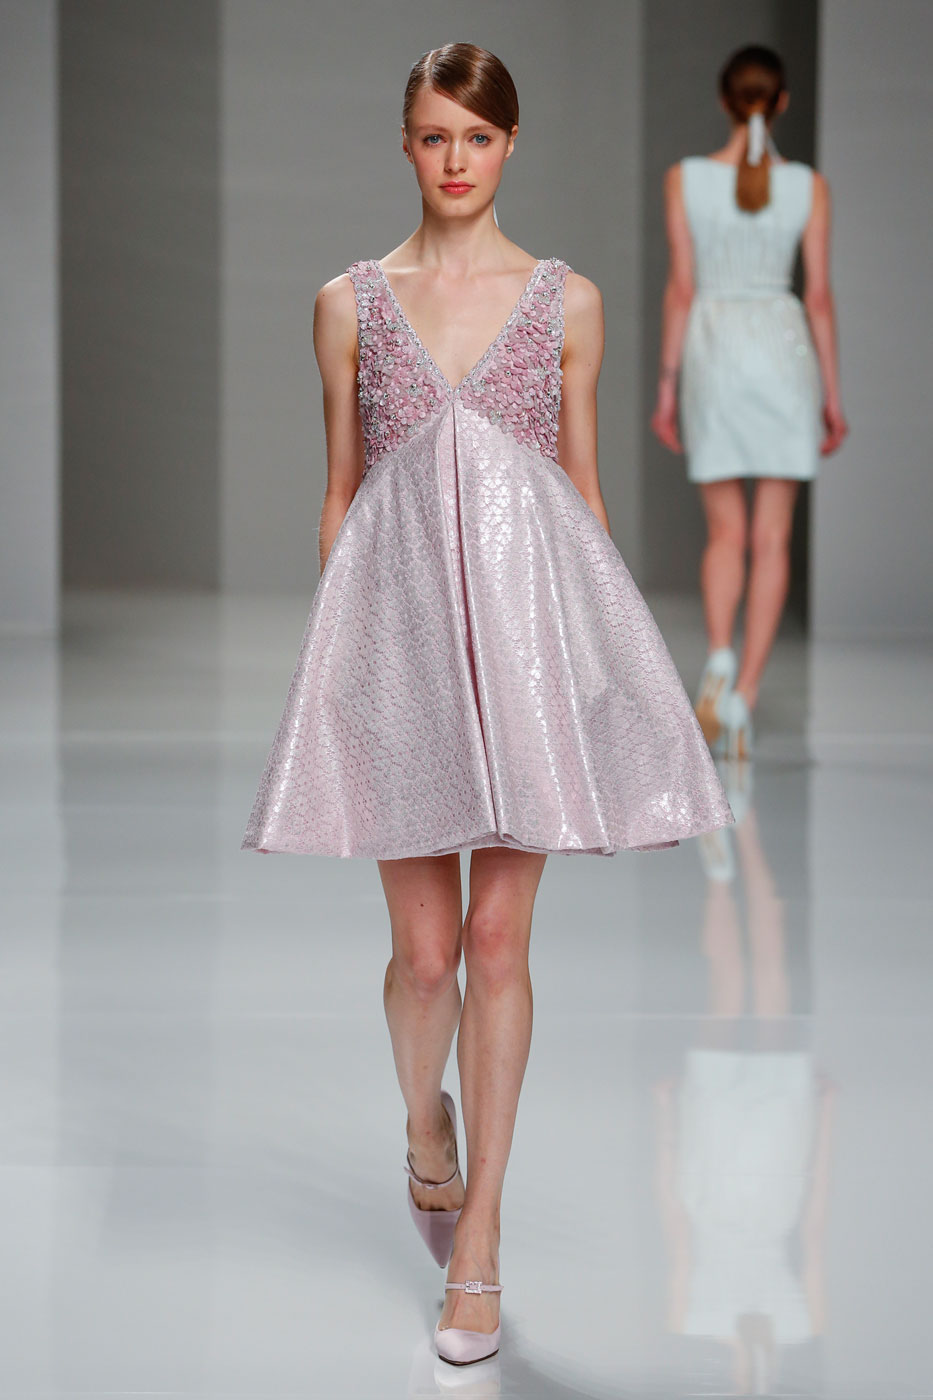 Georges-Hobeika-fashion-runway-show-haute-couture-paris-spring-2015-the-impression-09